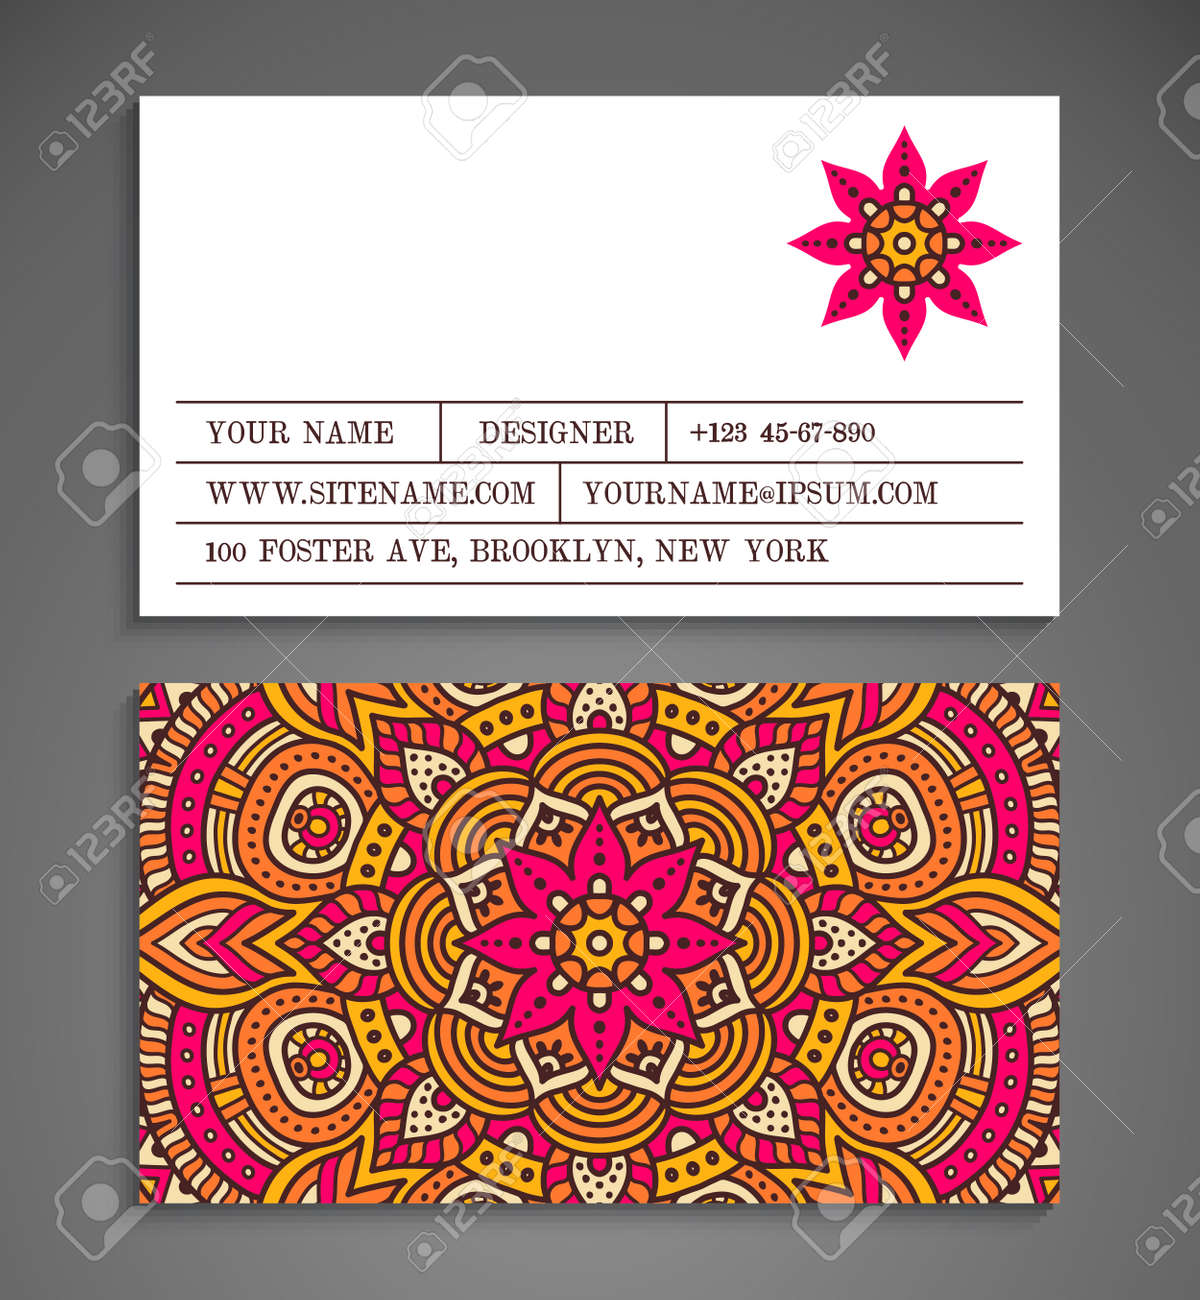 Collection Business Card Or Invitation Vector Background Vintage Decorative Elements Hand Drawn